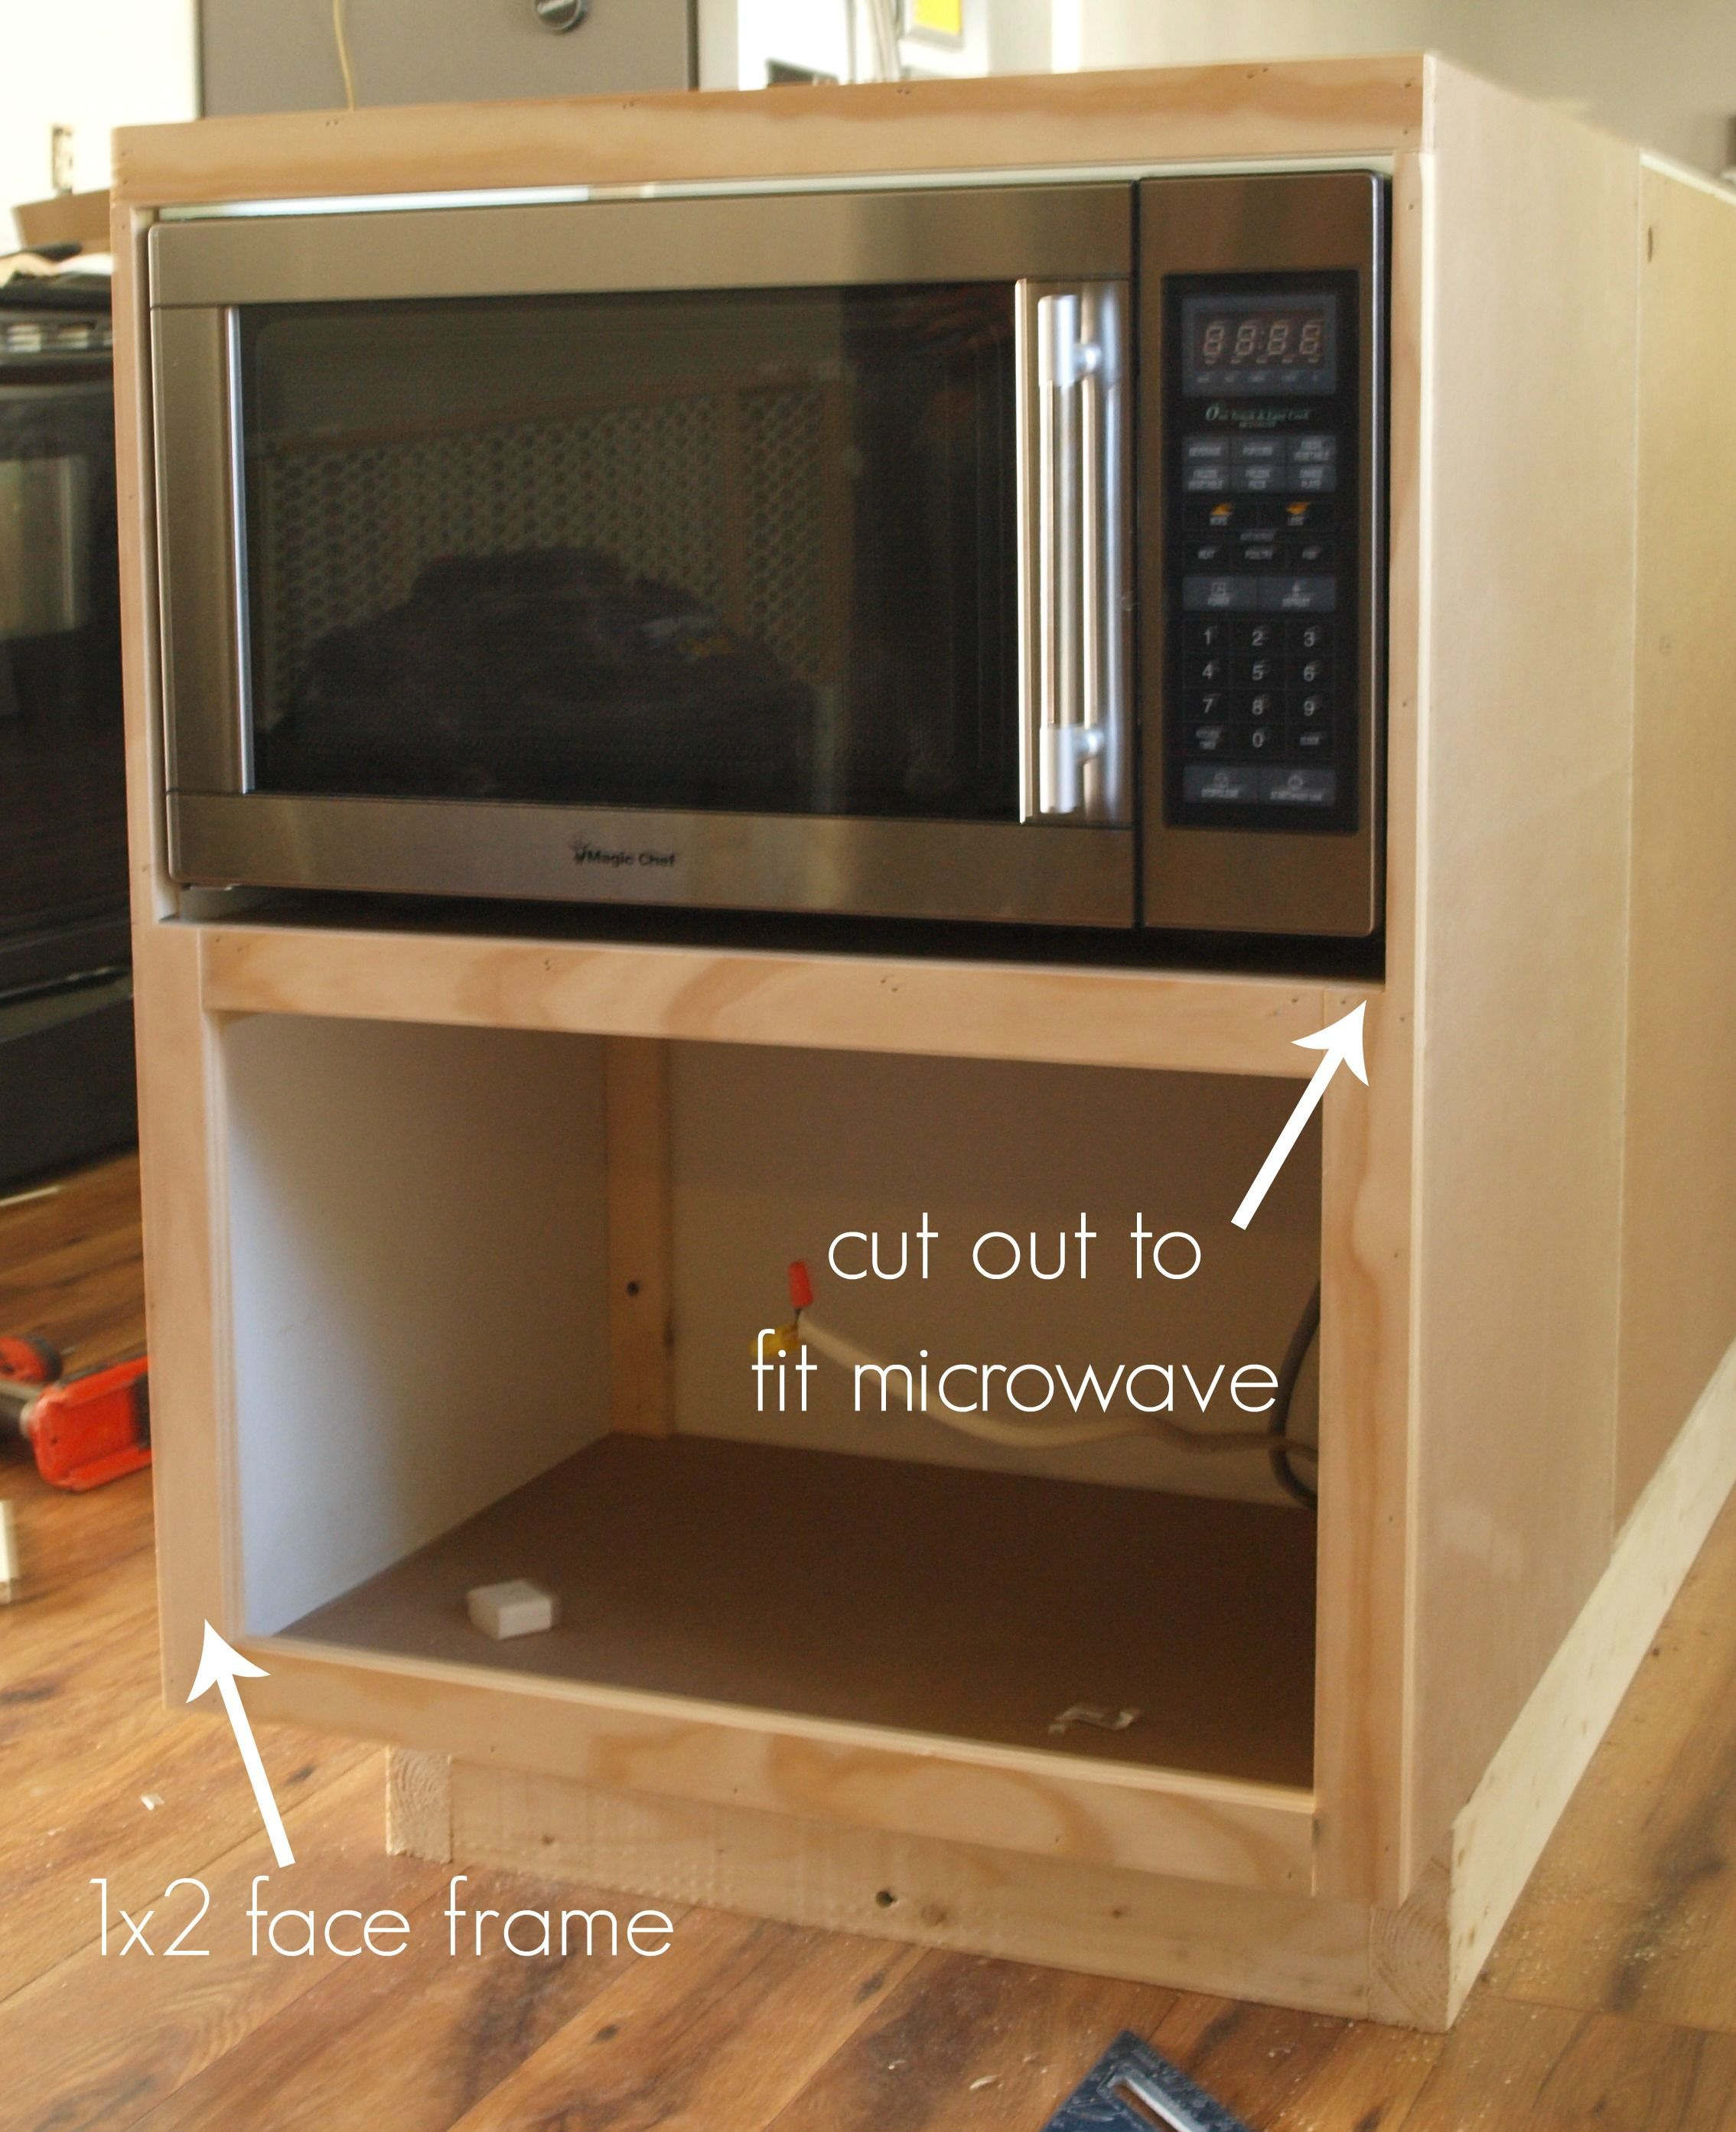 Image Result For Convert Cupboard For Microwave Microwave Cabinet Built In Microwave Cabinet Built In Microwave